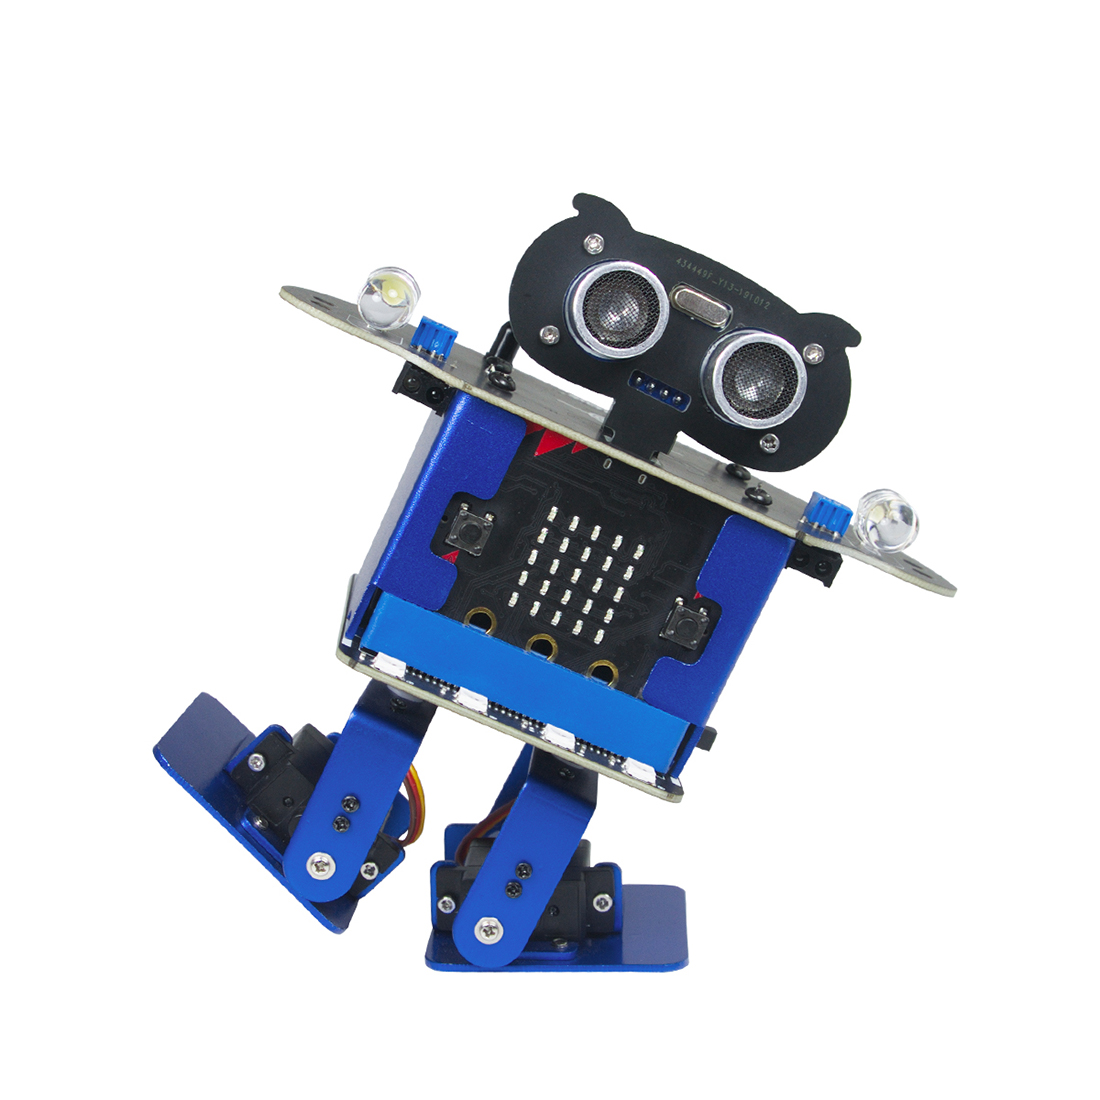 New Arrival Programmable Dancing Robot Bipedal Humanoid Microbit Robot DIY Programming Starter Kit For Microbit